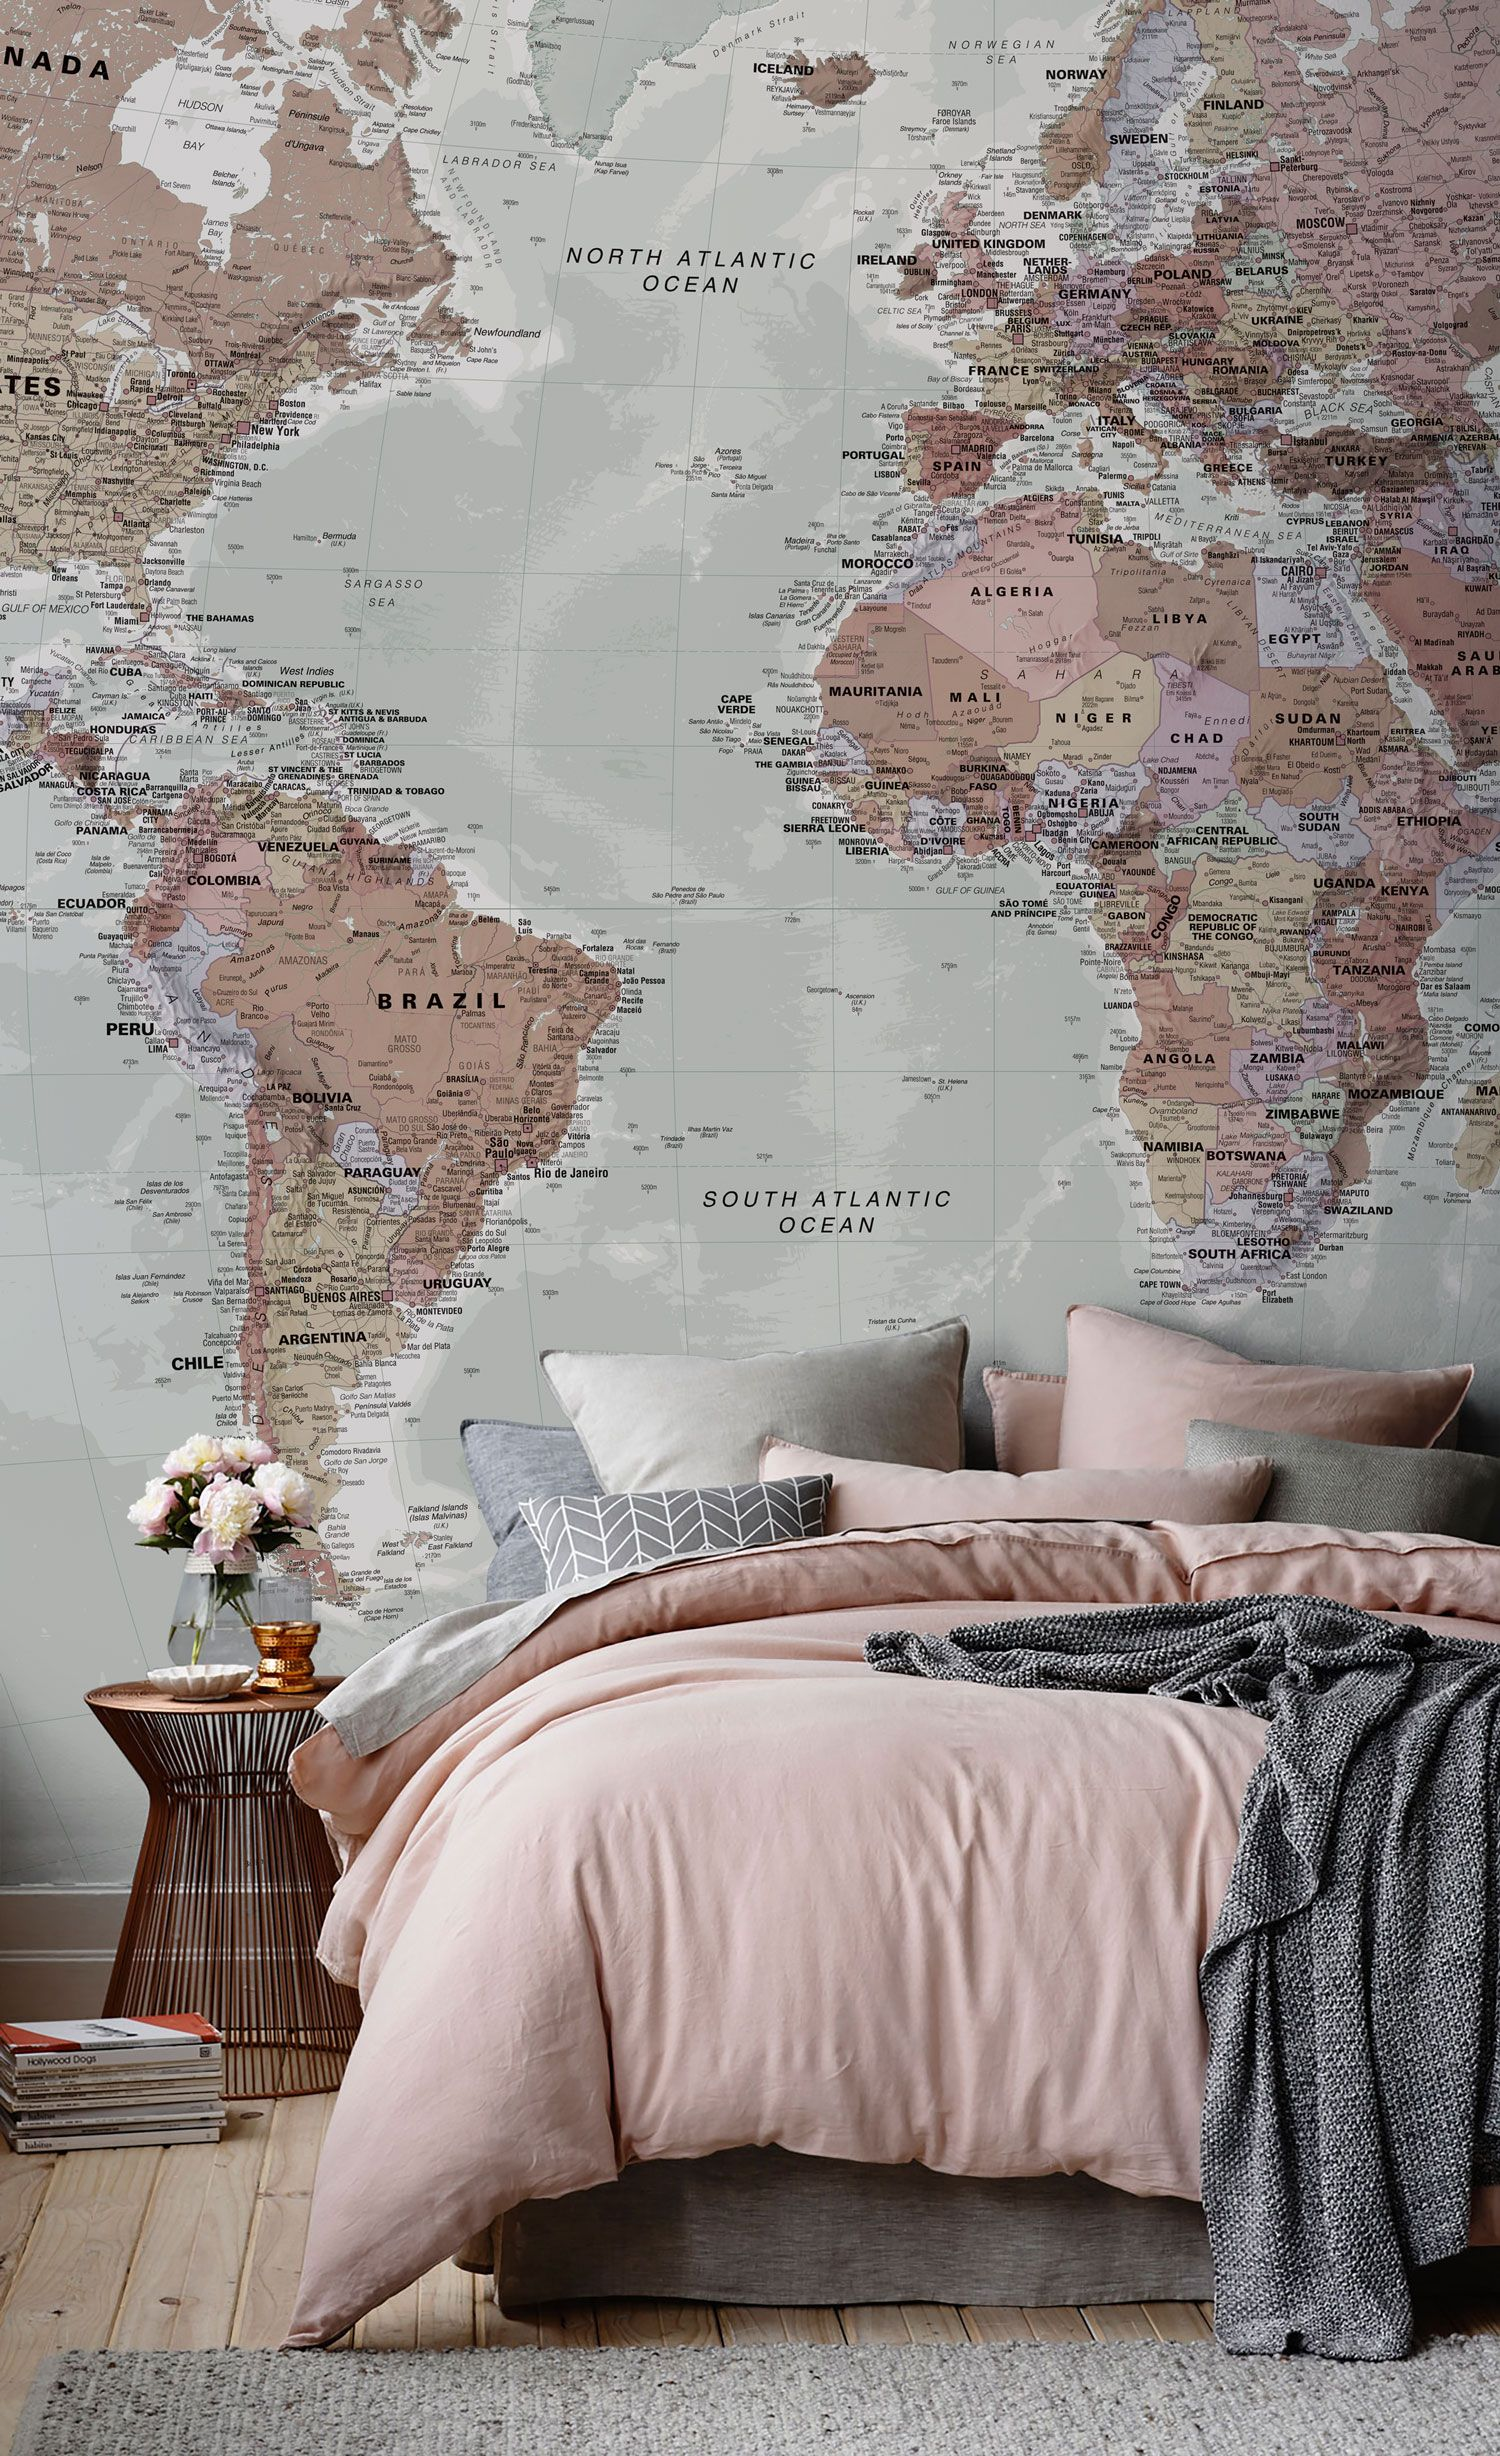 Classic world map wallpaper wall mural muralswallpaper classic world map wallpaper wall mural muralswallpaper gumiabroncs Choice Image